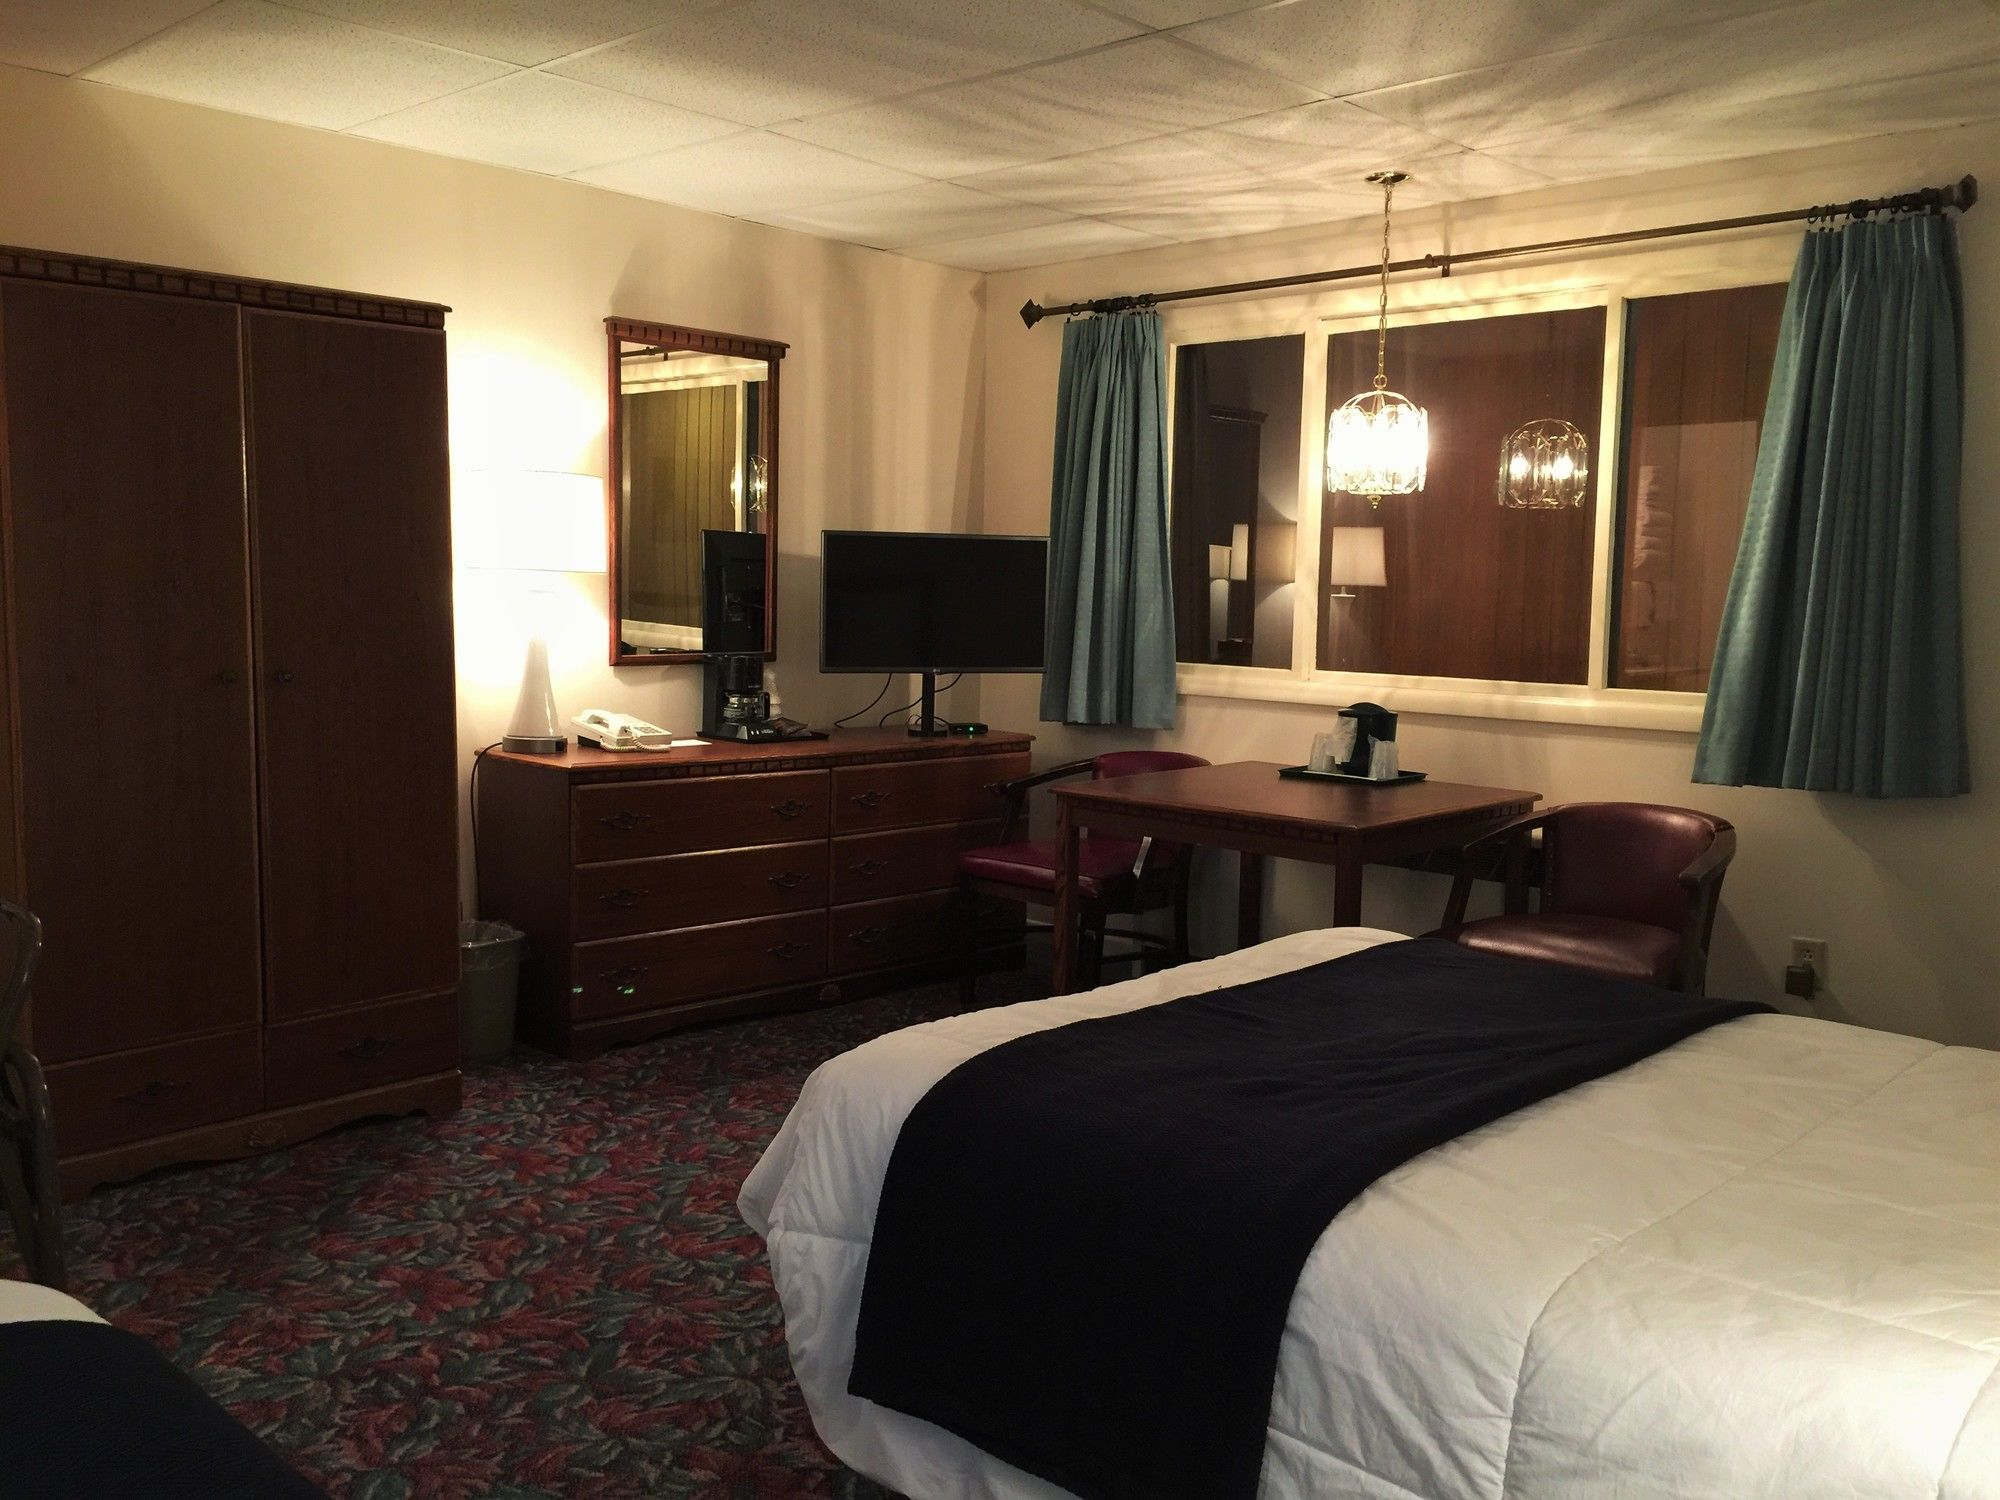 Marquette hotel coupons for marquette michigan for Cedar motor inn in marquette michigan